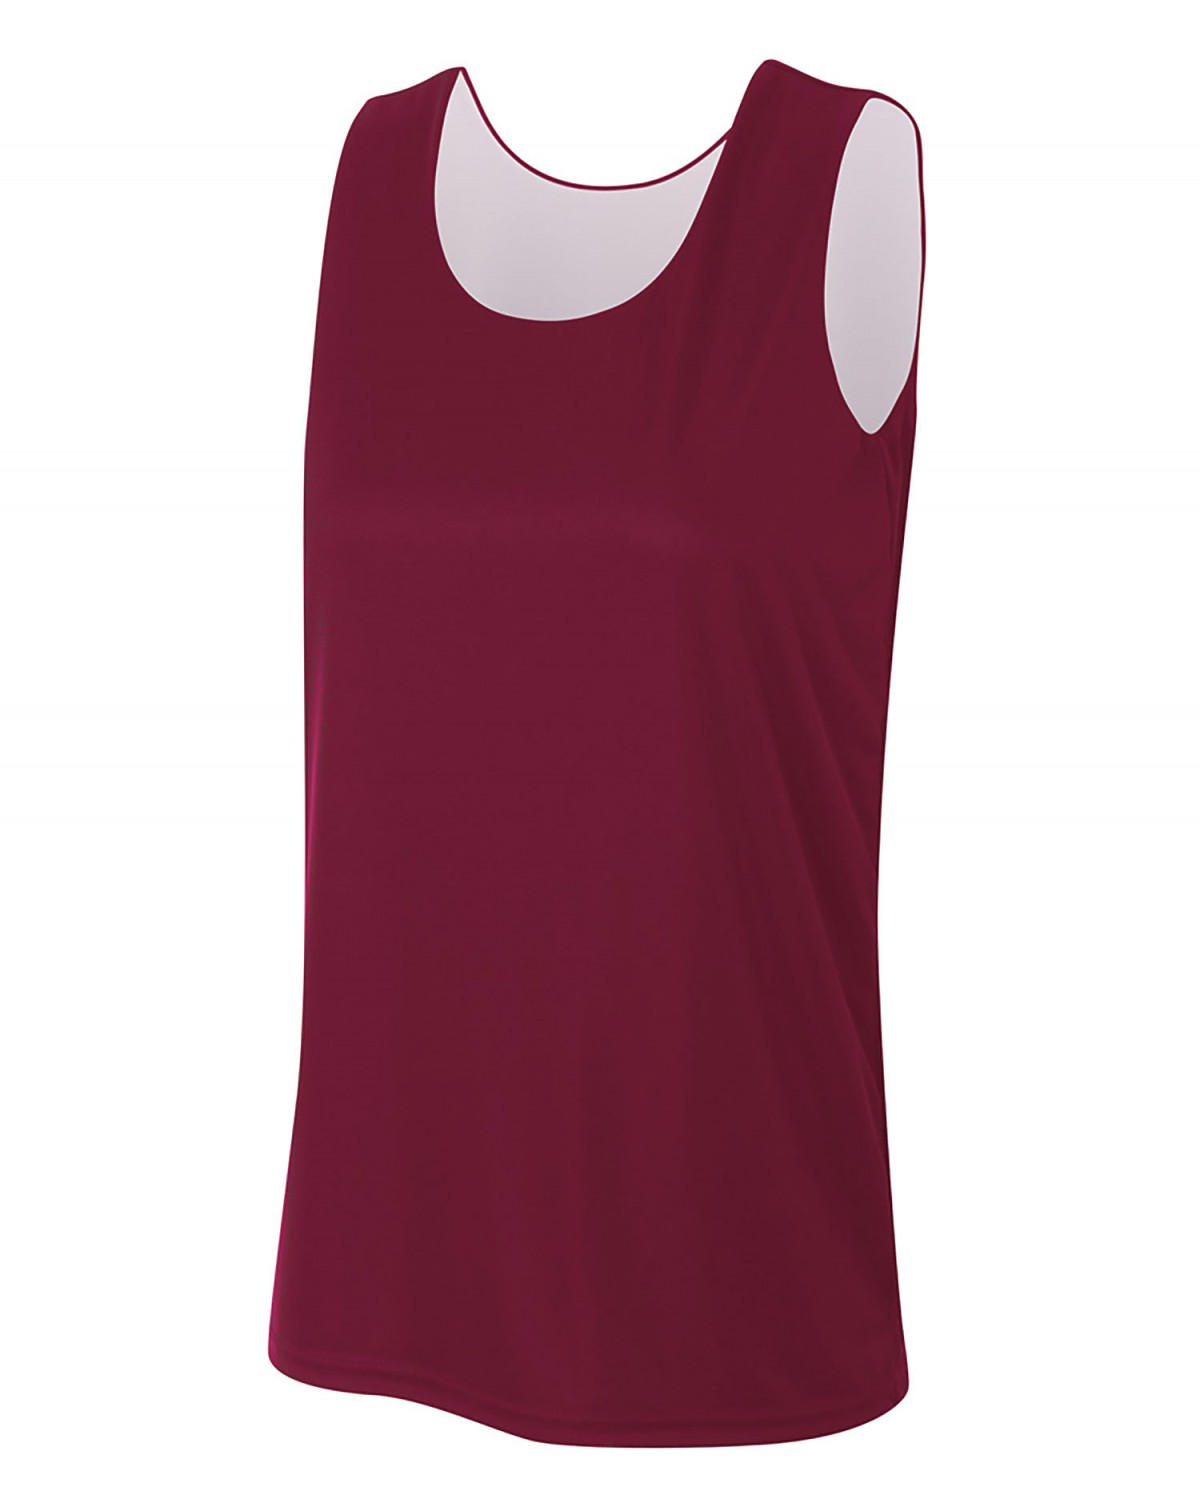 A4NW2375 A4 MAROON/WHITE